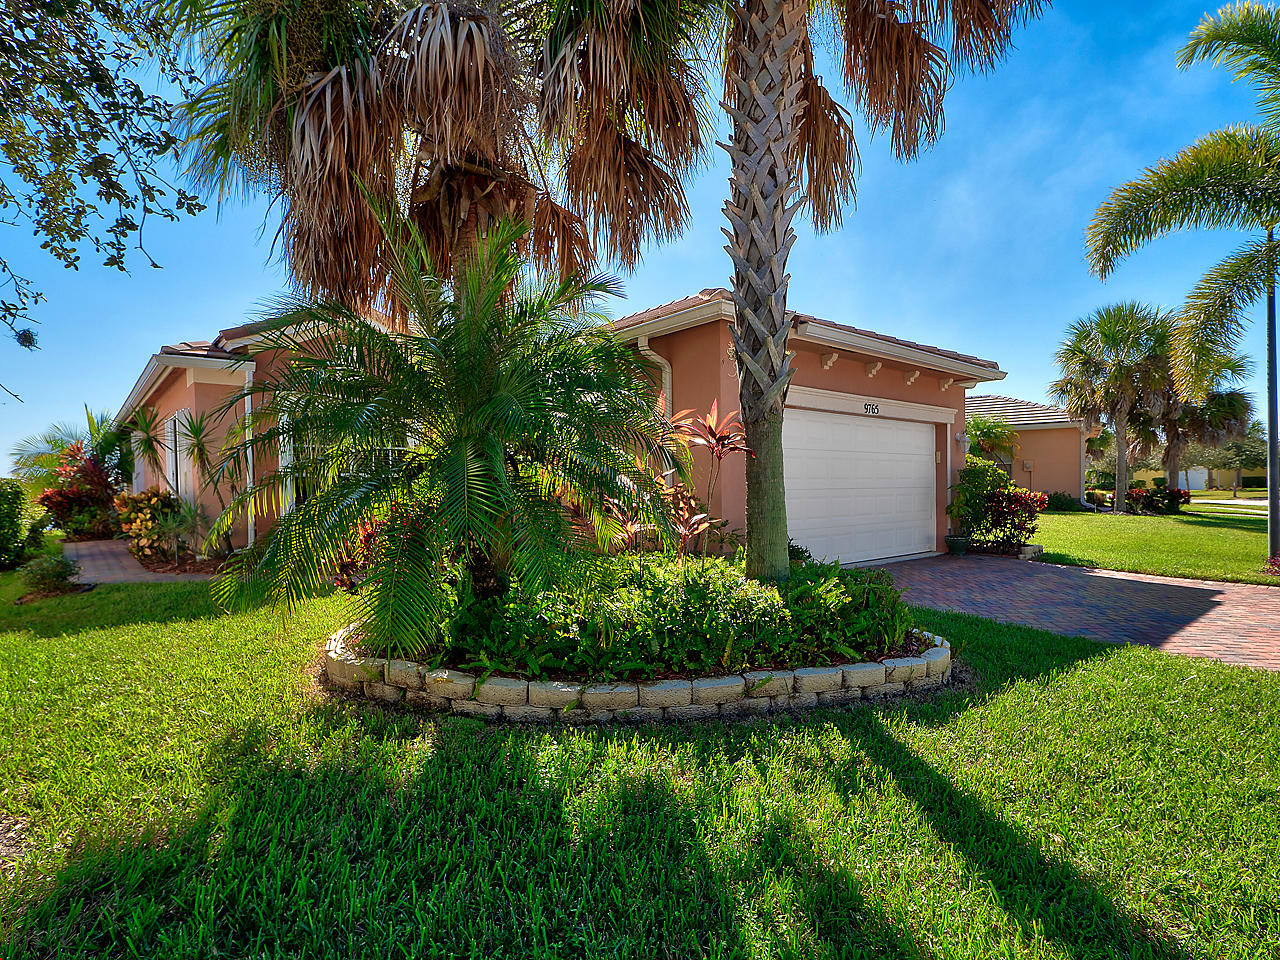 Paradise found with this 3 bedroom and 2 bath home located in Heritage Oaks at Tradition! This beautiful Georgian model features ceramic tile flooring throughout the main living areas, a large spacious great room, and a large kitchen area. The kitchen features custom wood cabinets and a breakfast area perfect for convenient dining . The master bedroom features lake view, a tray ceiling, and an ensuite bath complete with separate shower. Accordion storm shutters. The covered and screened patio are features an outlook that is nothing short of divine. Relax and enjoy the Florida lifestyle while taking in the stunning lakefront vista. Heritage Oaks is a premier community and is close to Tradition Square, which features great shopping, dining, and  easy access to I-95. Schedule a showing today